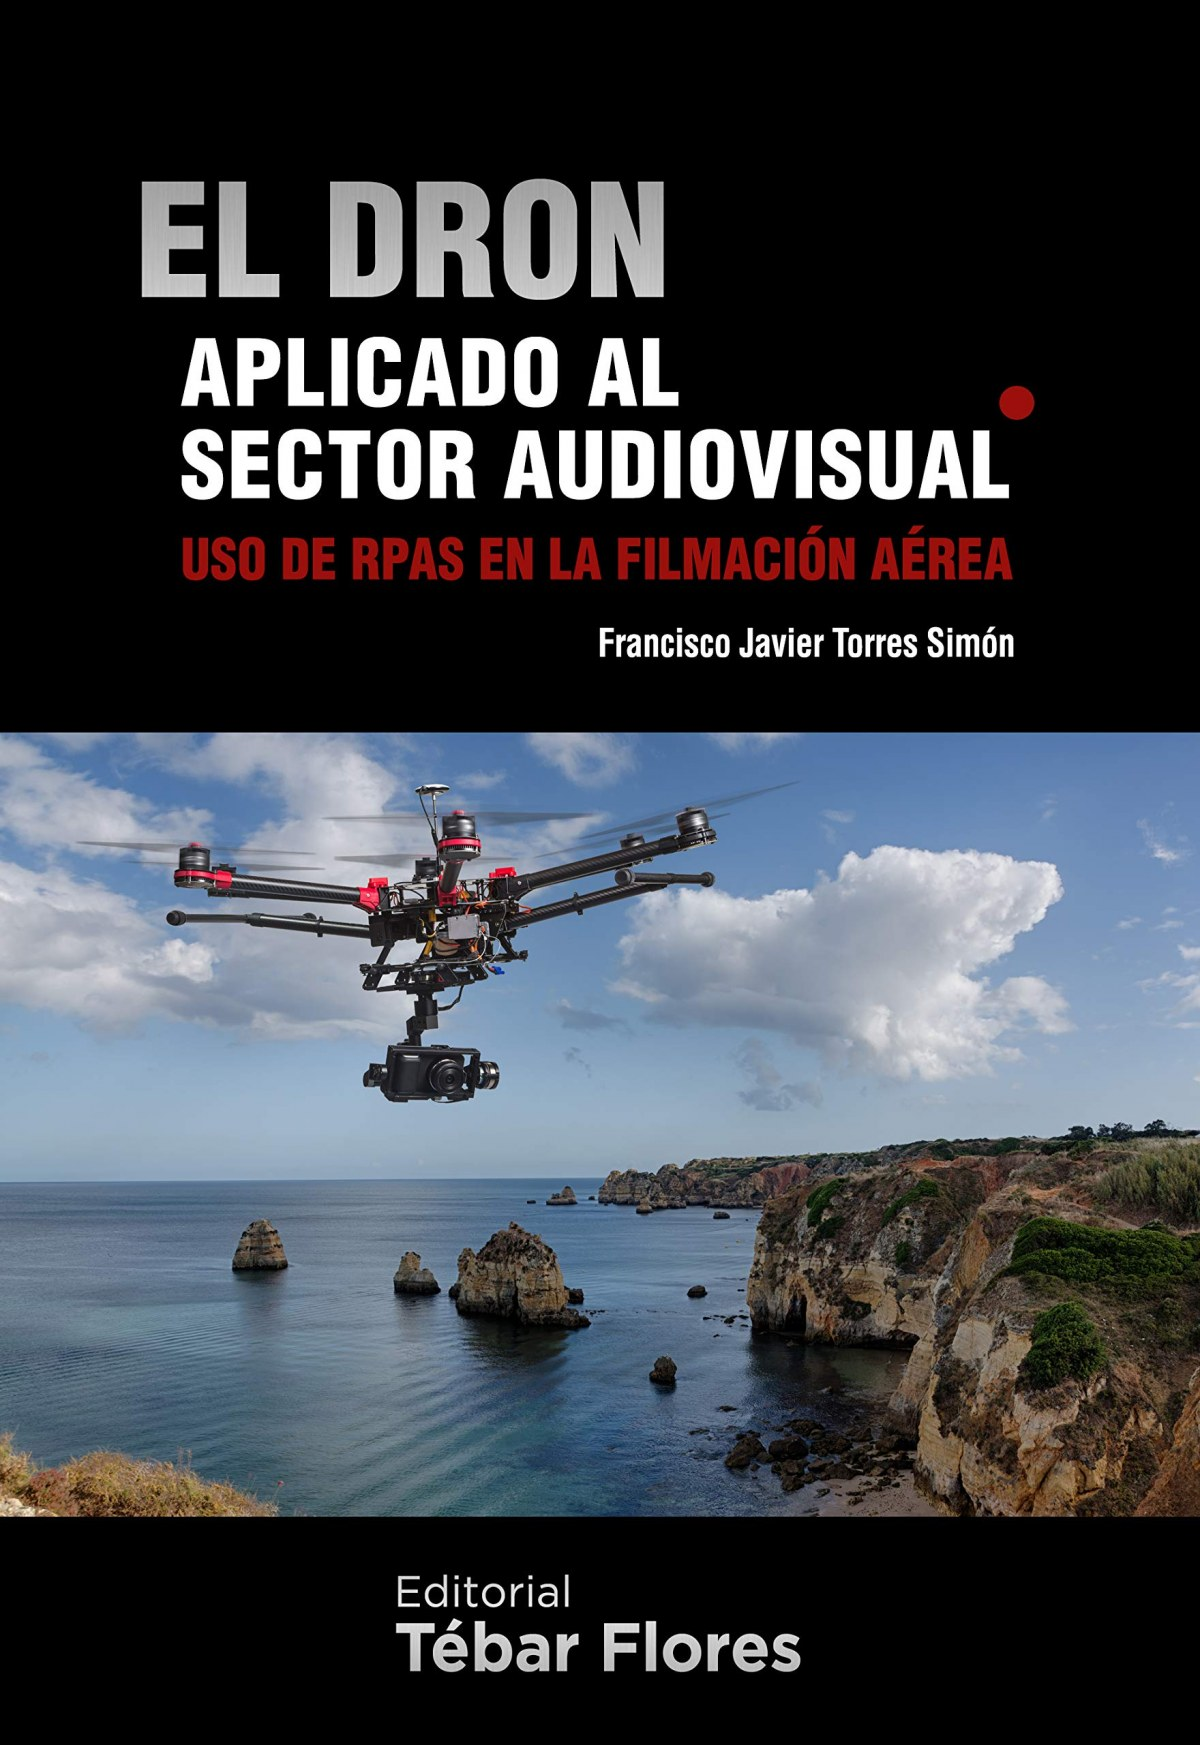 El dron aplicado al sector audiovisual 9788473605724